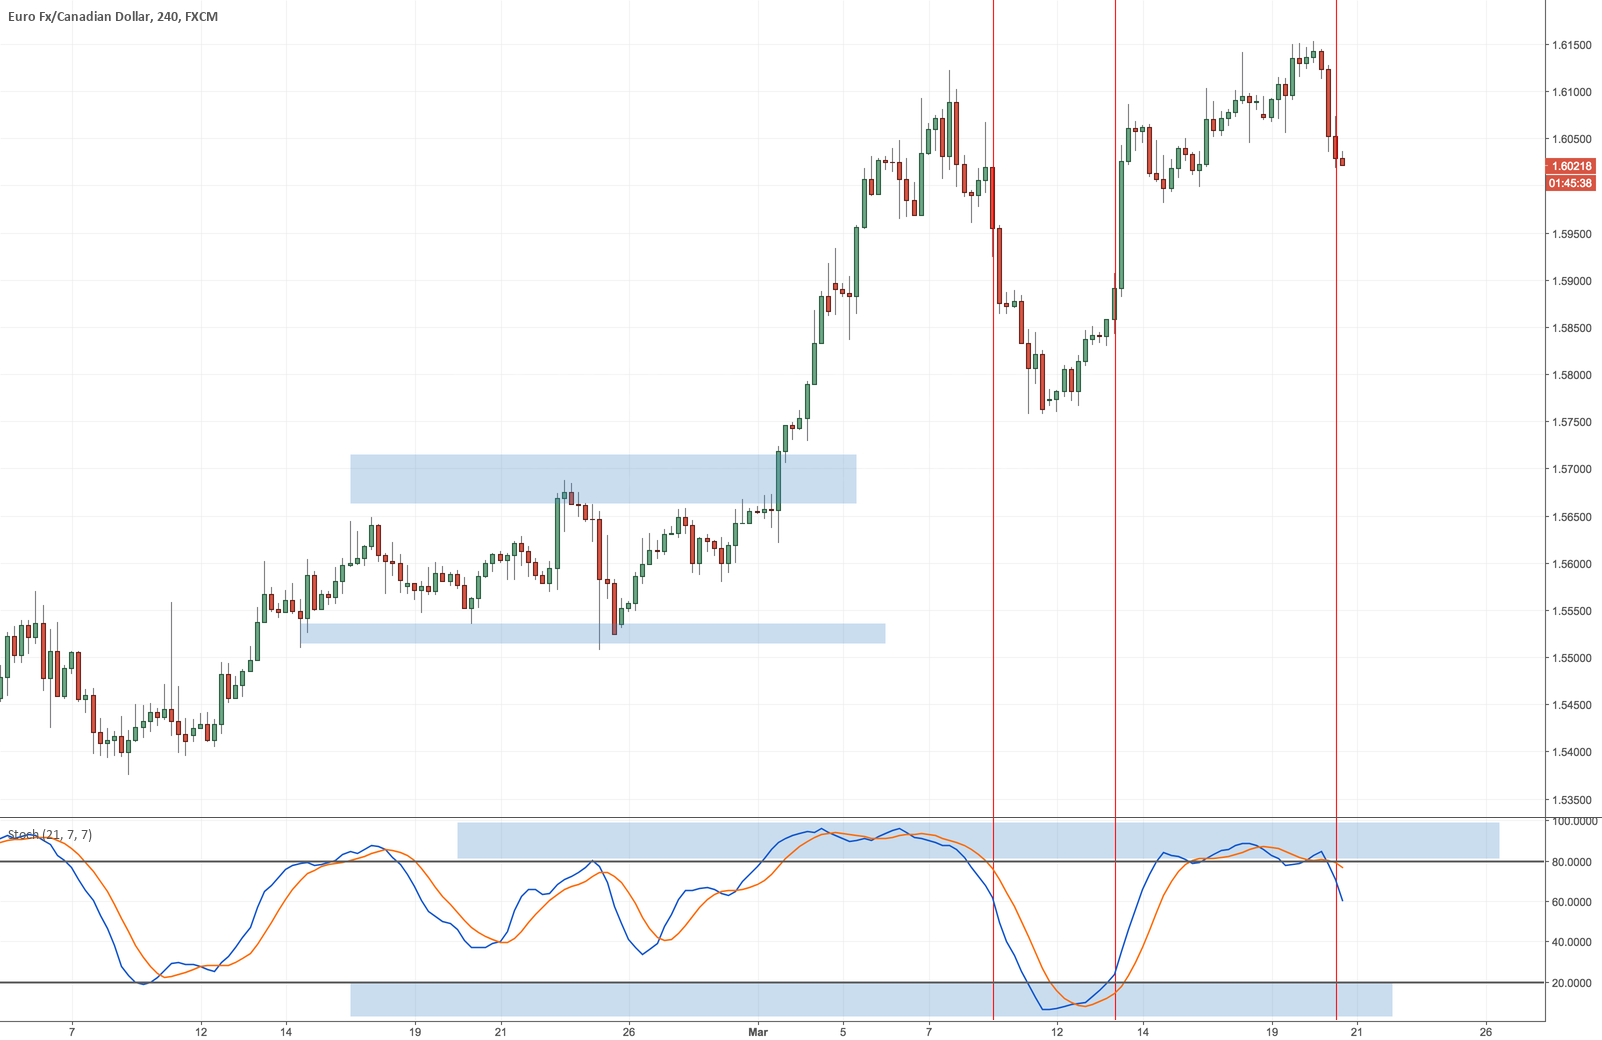 3 tools and indicators to analyze trend strength